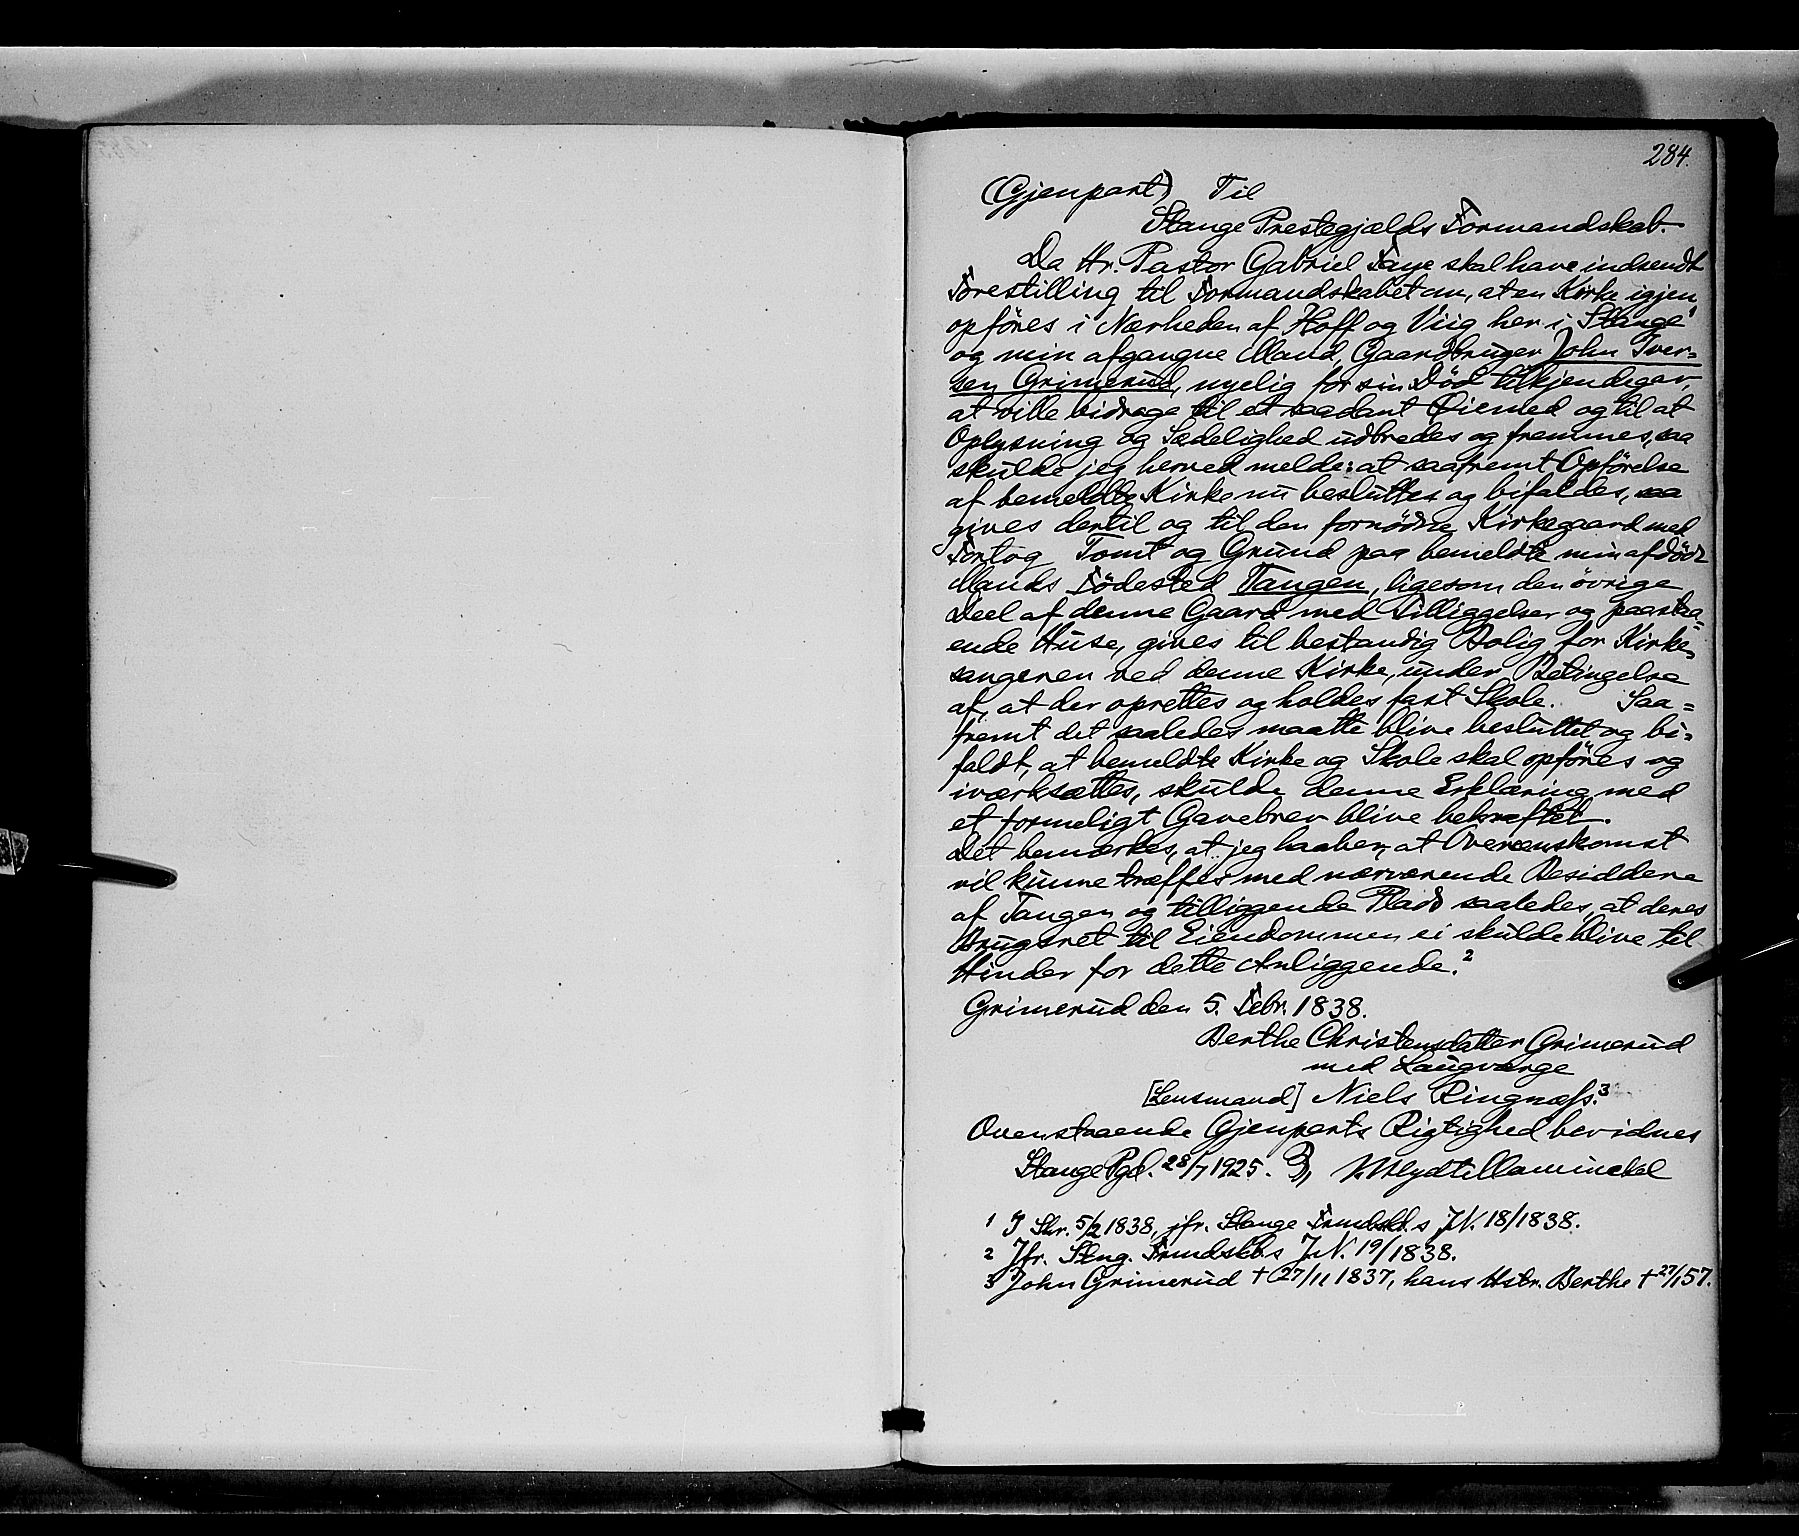 SAH, Stange prestekontor, K/L0014: Parish register (official) no. 14, 1862-1879, p. 284